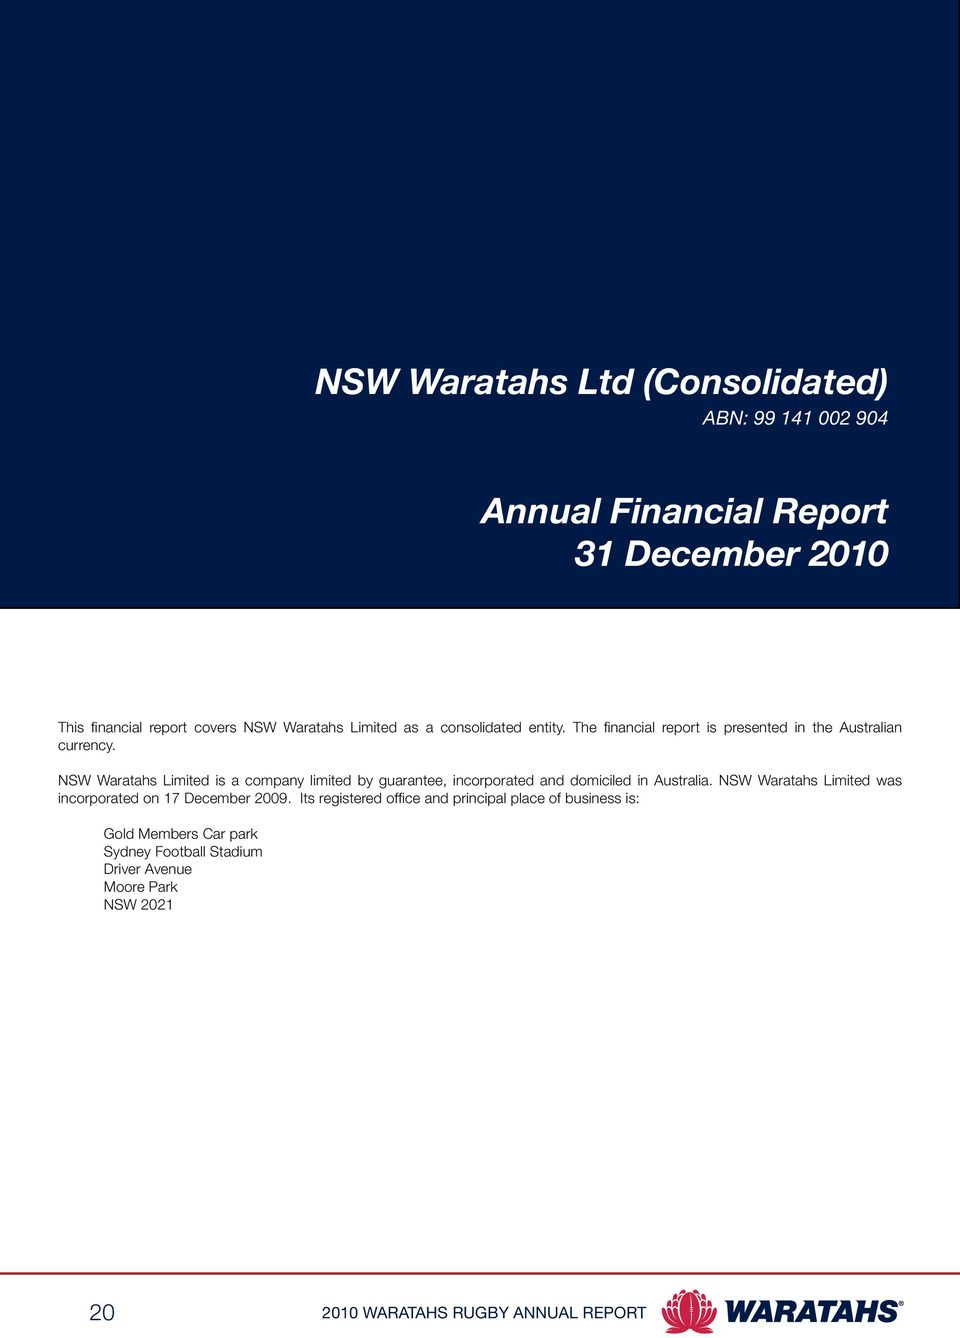 NSW Waratahs Limited is a company limited by guarantee, incorporated and domiciled in Australia.